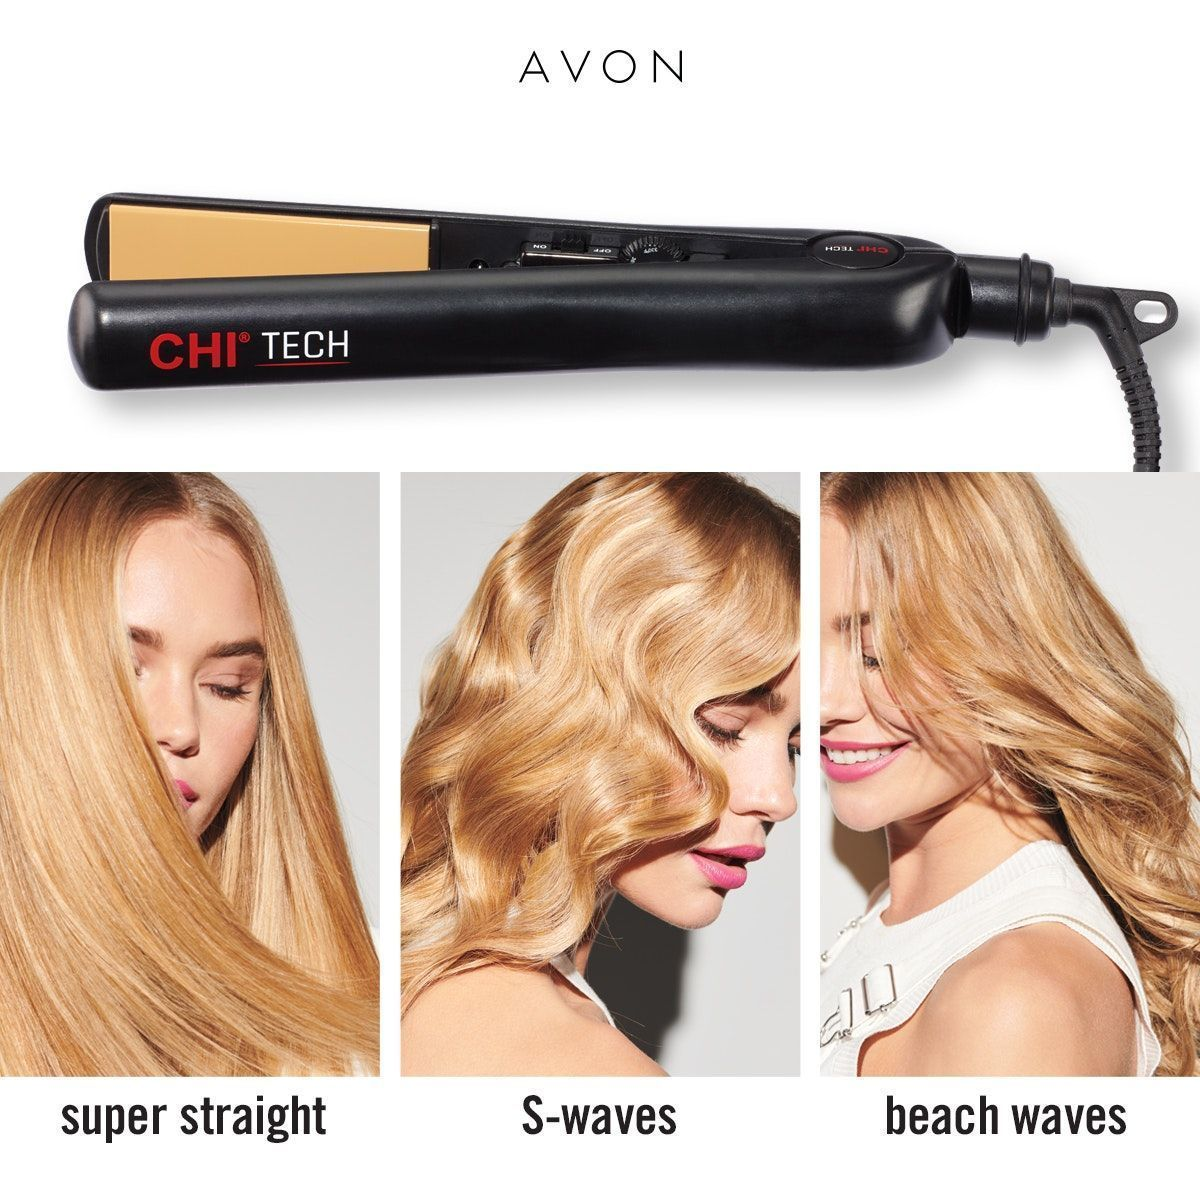 Chi Tech 1 Ceramic Dial Hair Styling Iron This Stylist Choice Award Winner Does It All Straighten Curl Flip Wa In 2020 Styling Iron Chi Hair Products Hair Styles